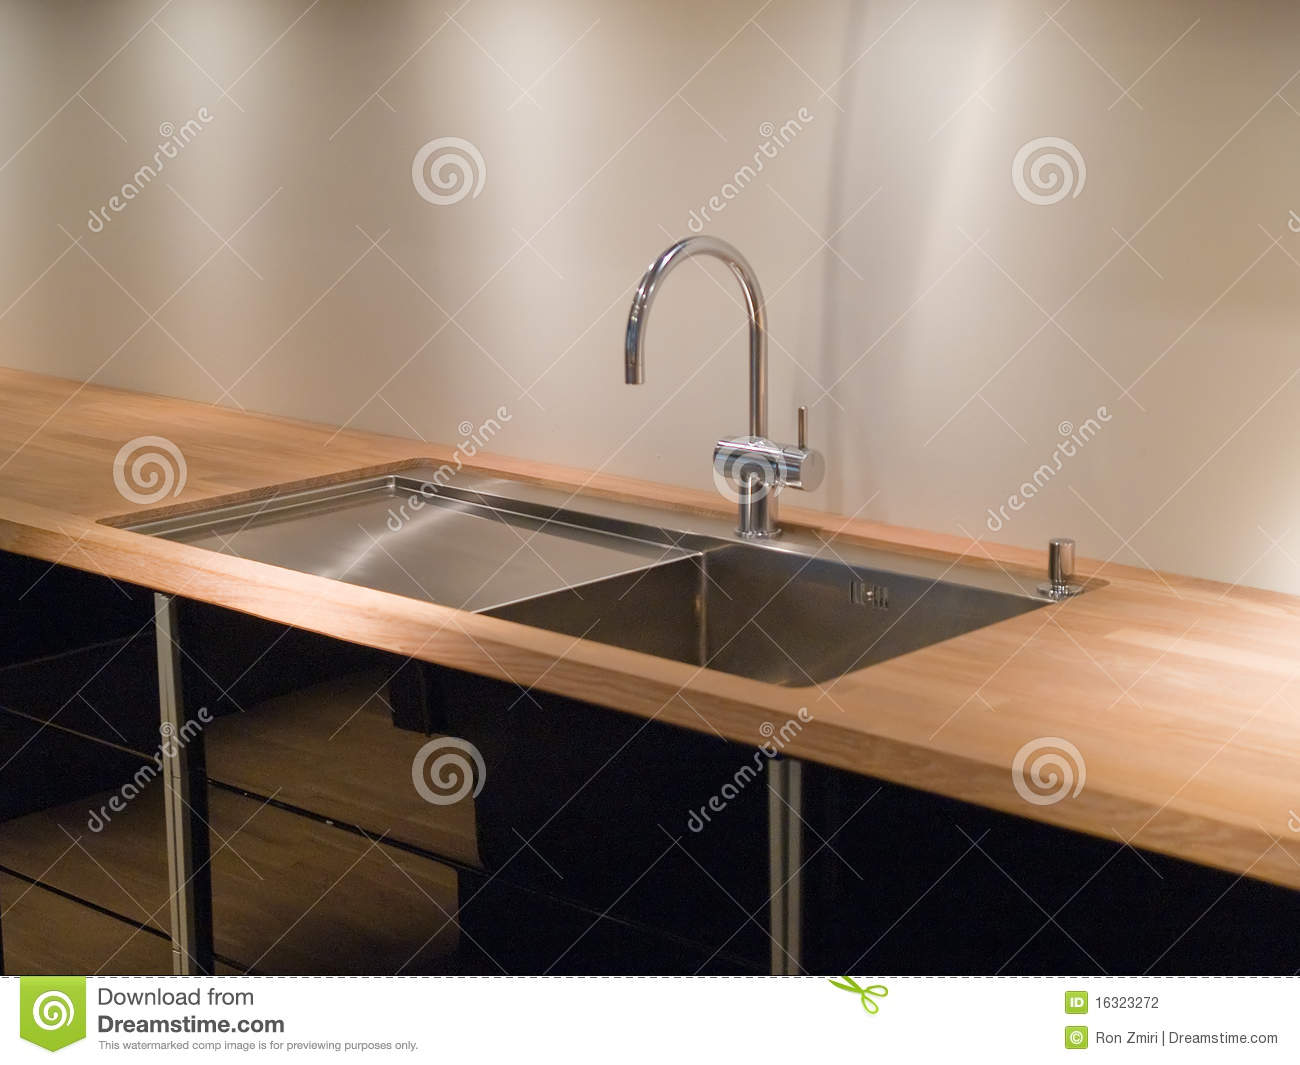 Modern Kitchen Sink Faucets modern kitchen sink and faucet royalty free stock photos - image